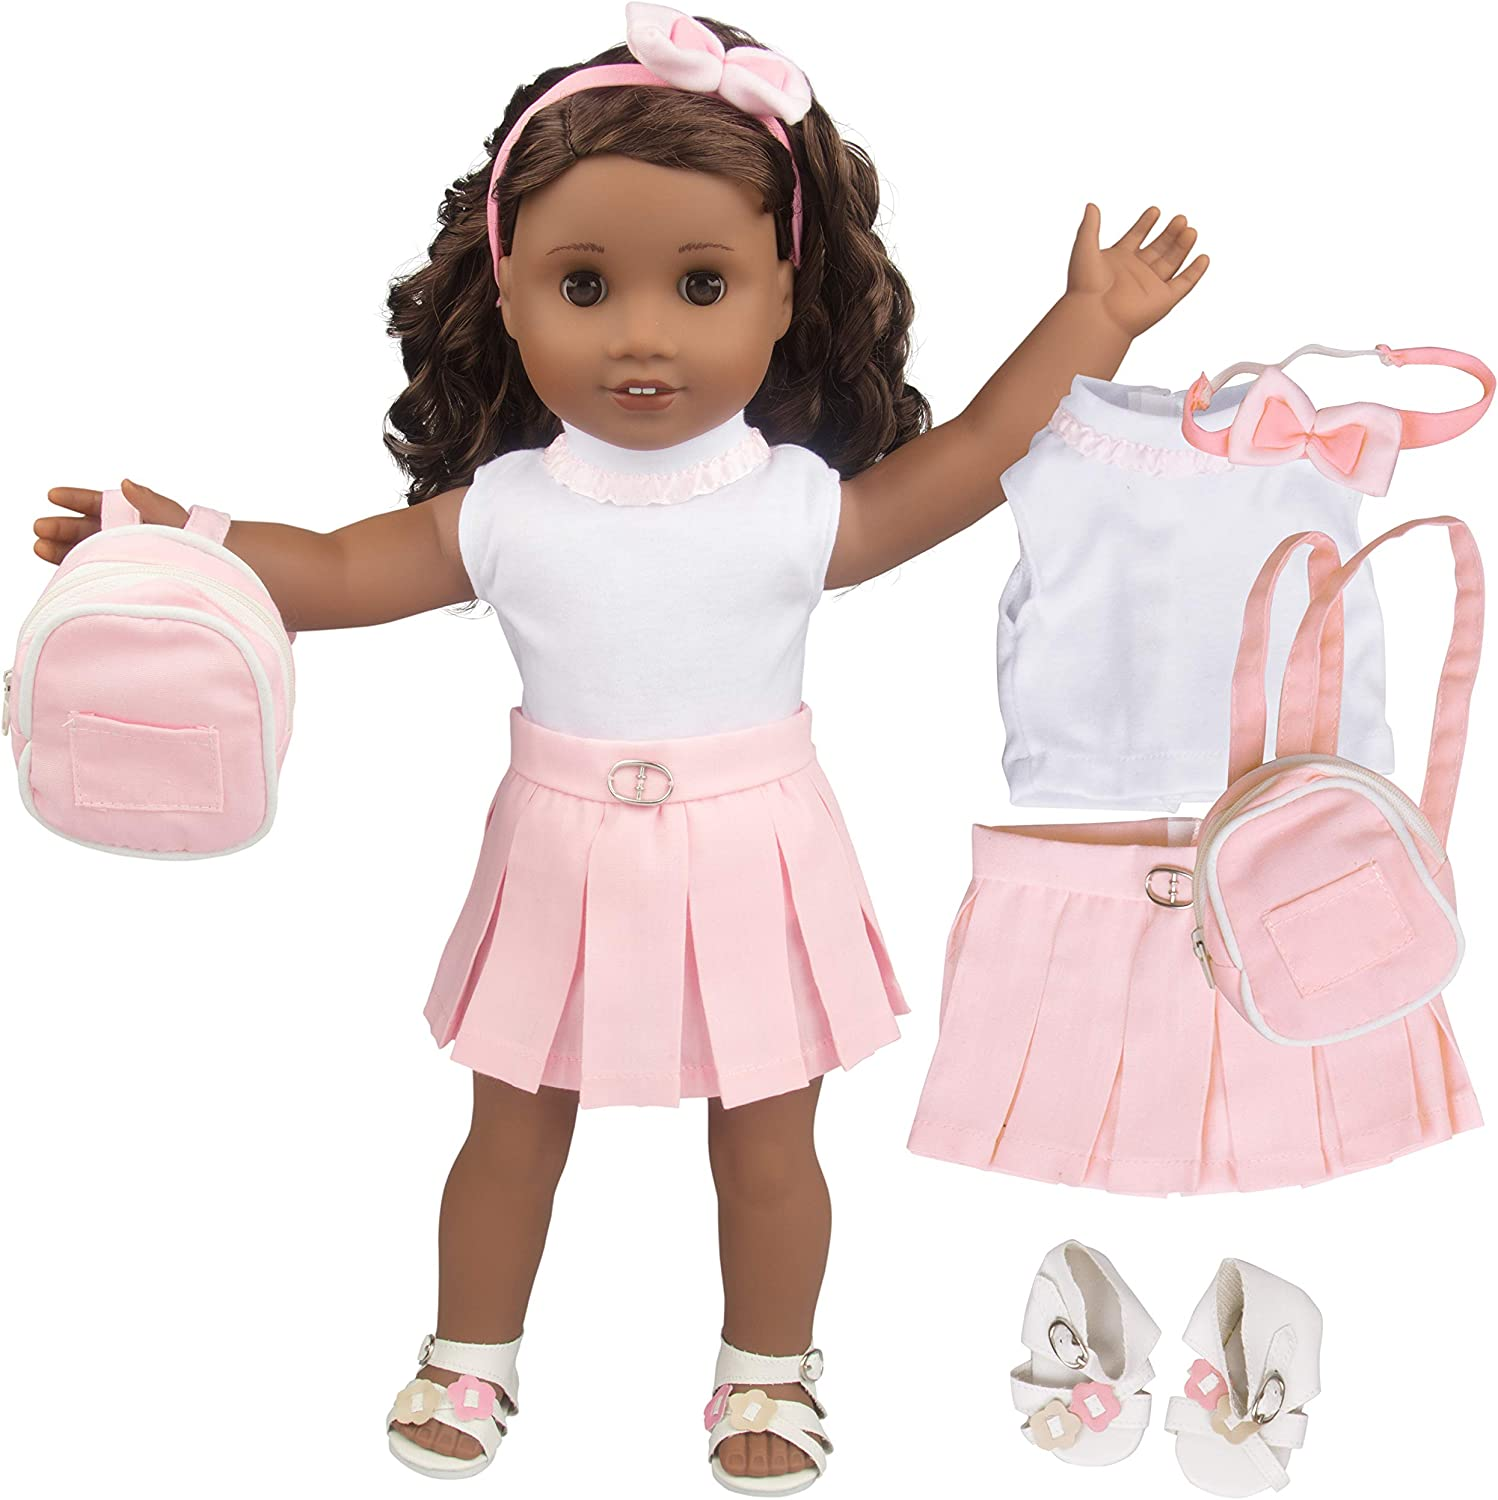 Hair Band for American 18 Inch Girl Dolls Dress Cute Bunny Doll Tight Clothes